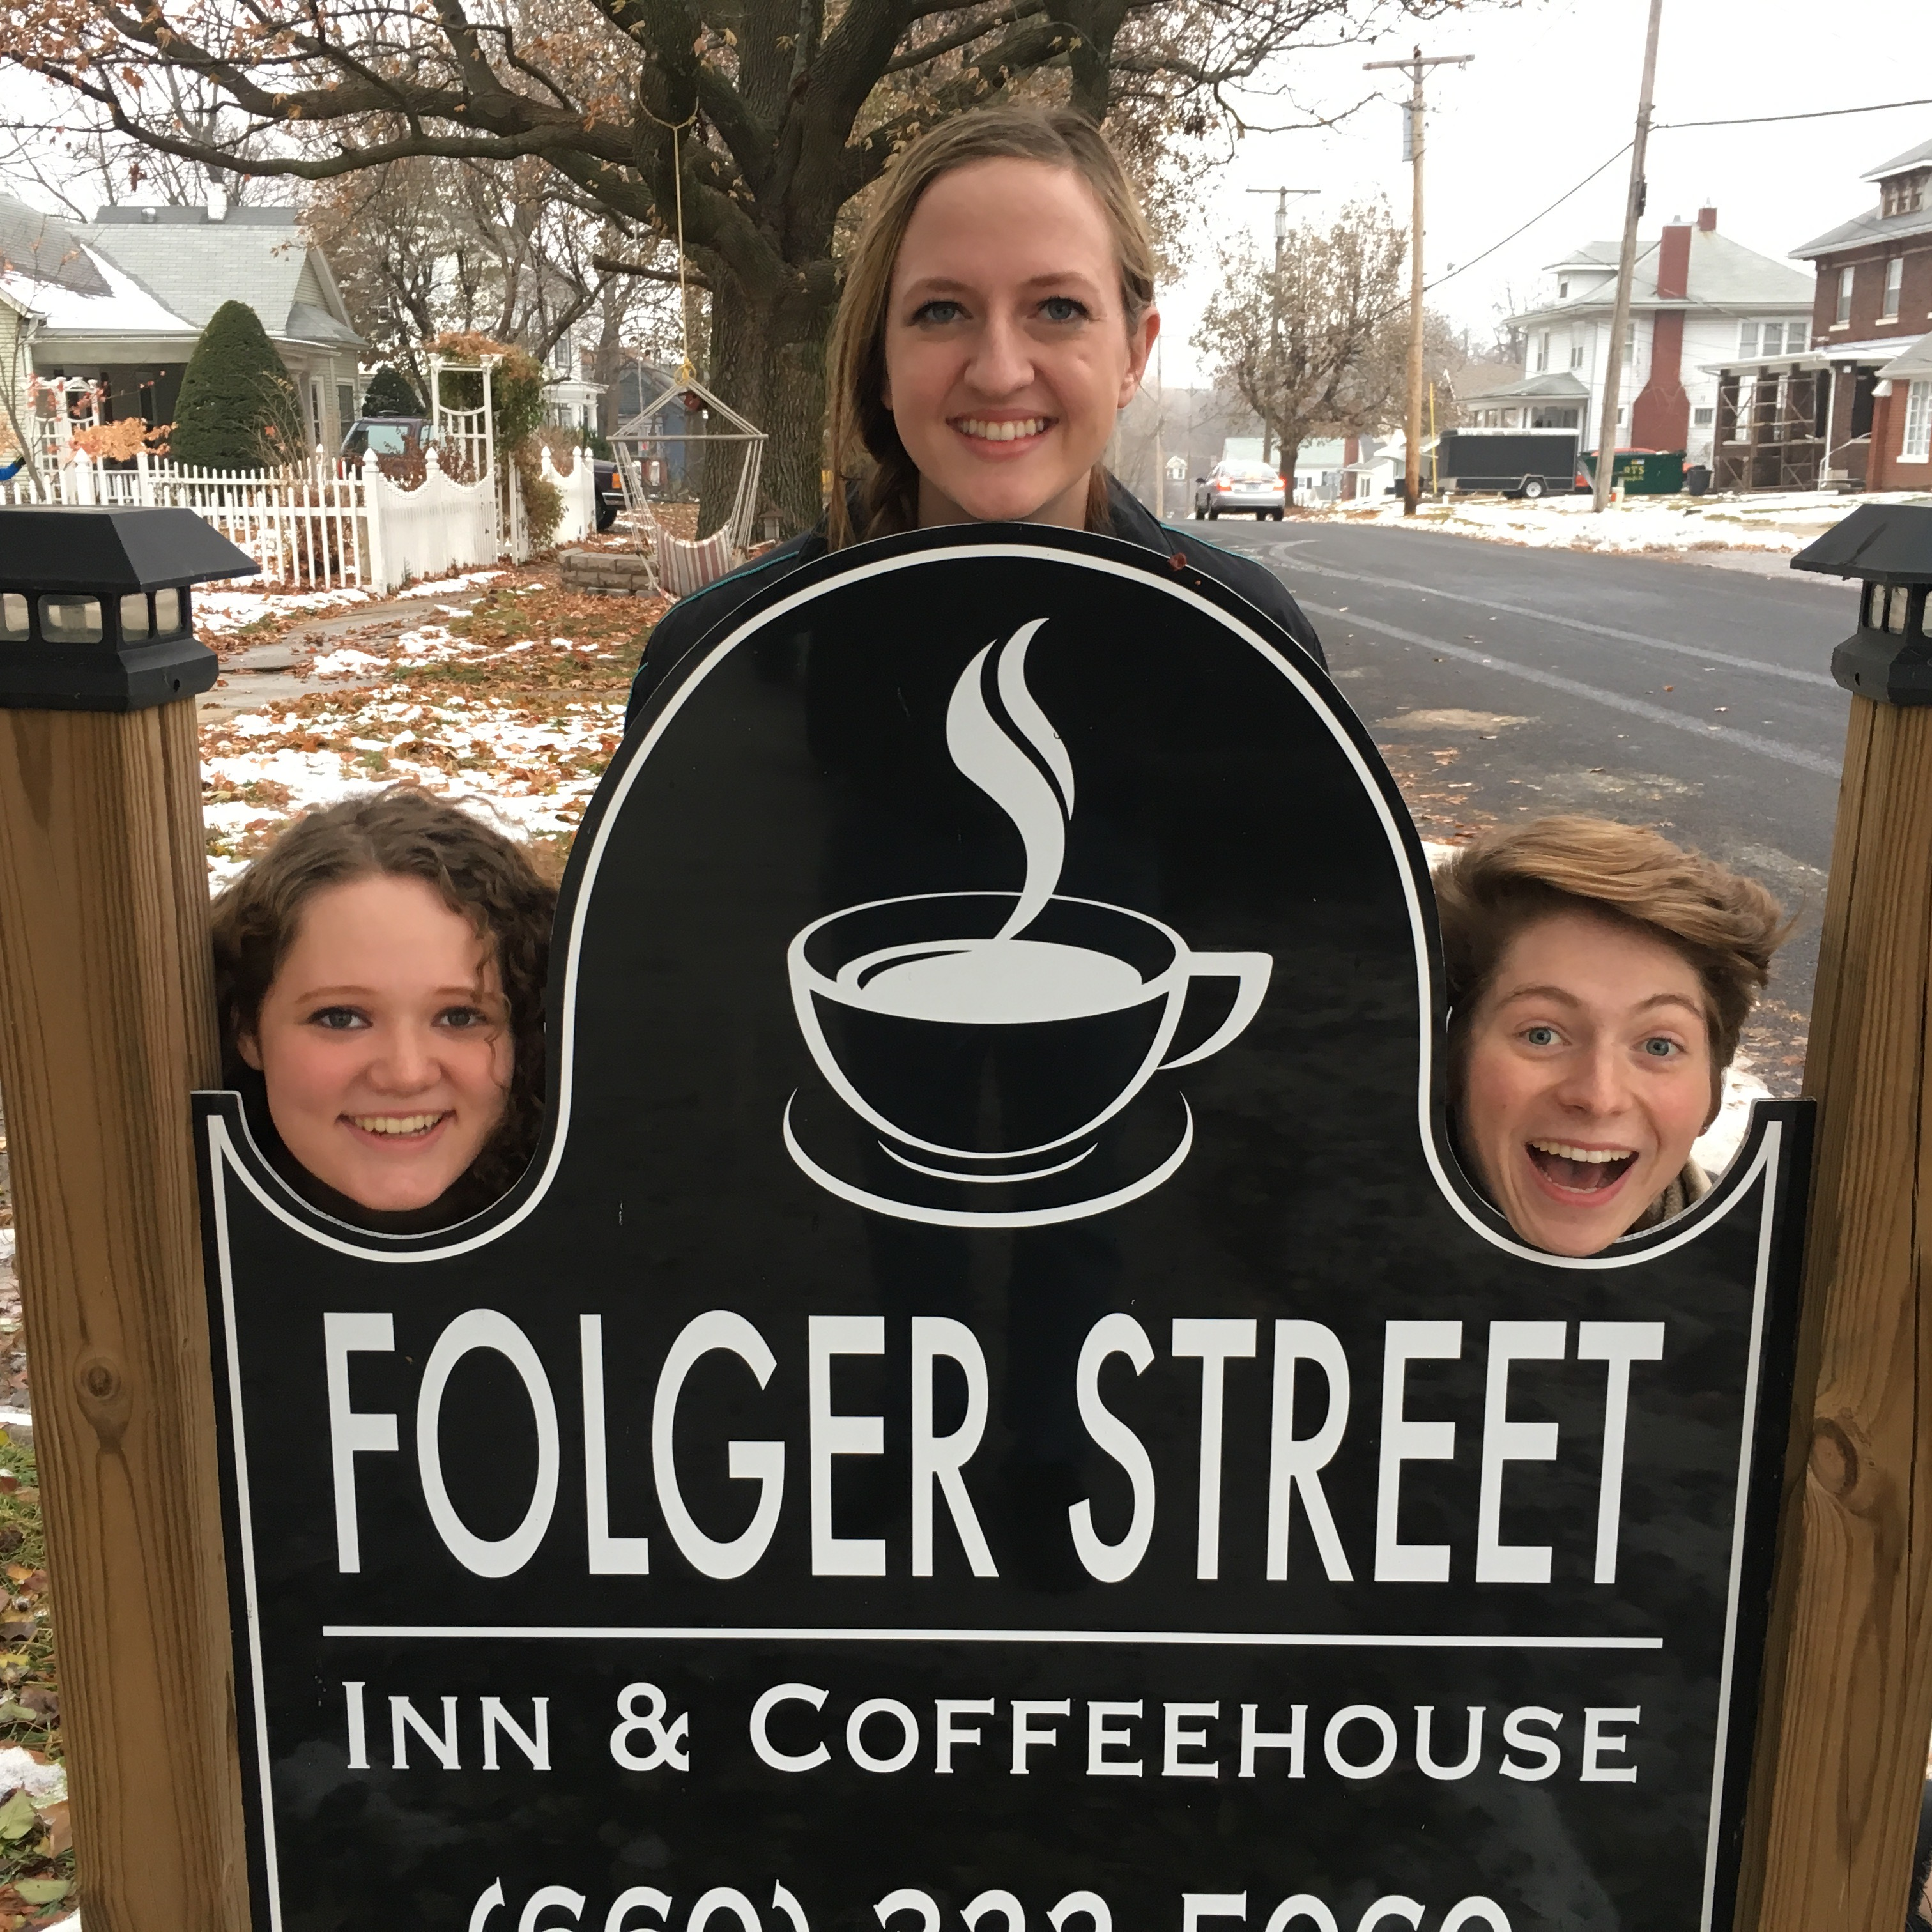 Folger Street Inn & Coffeehouse